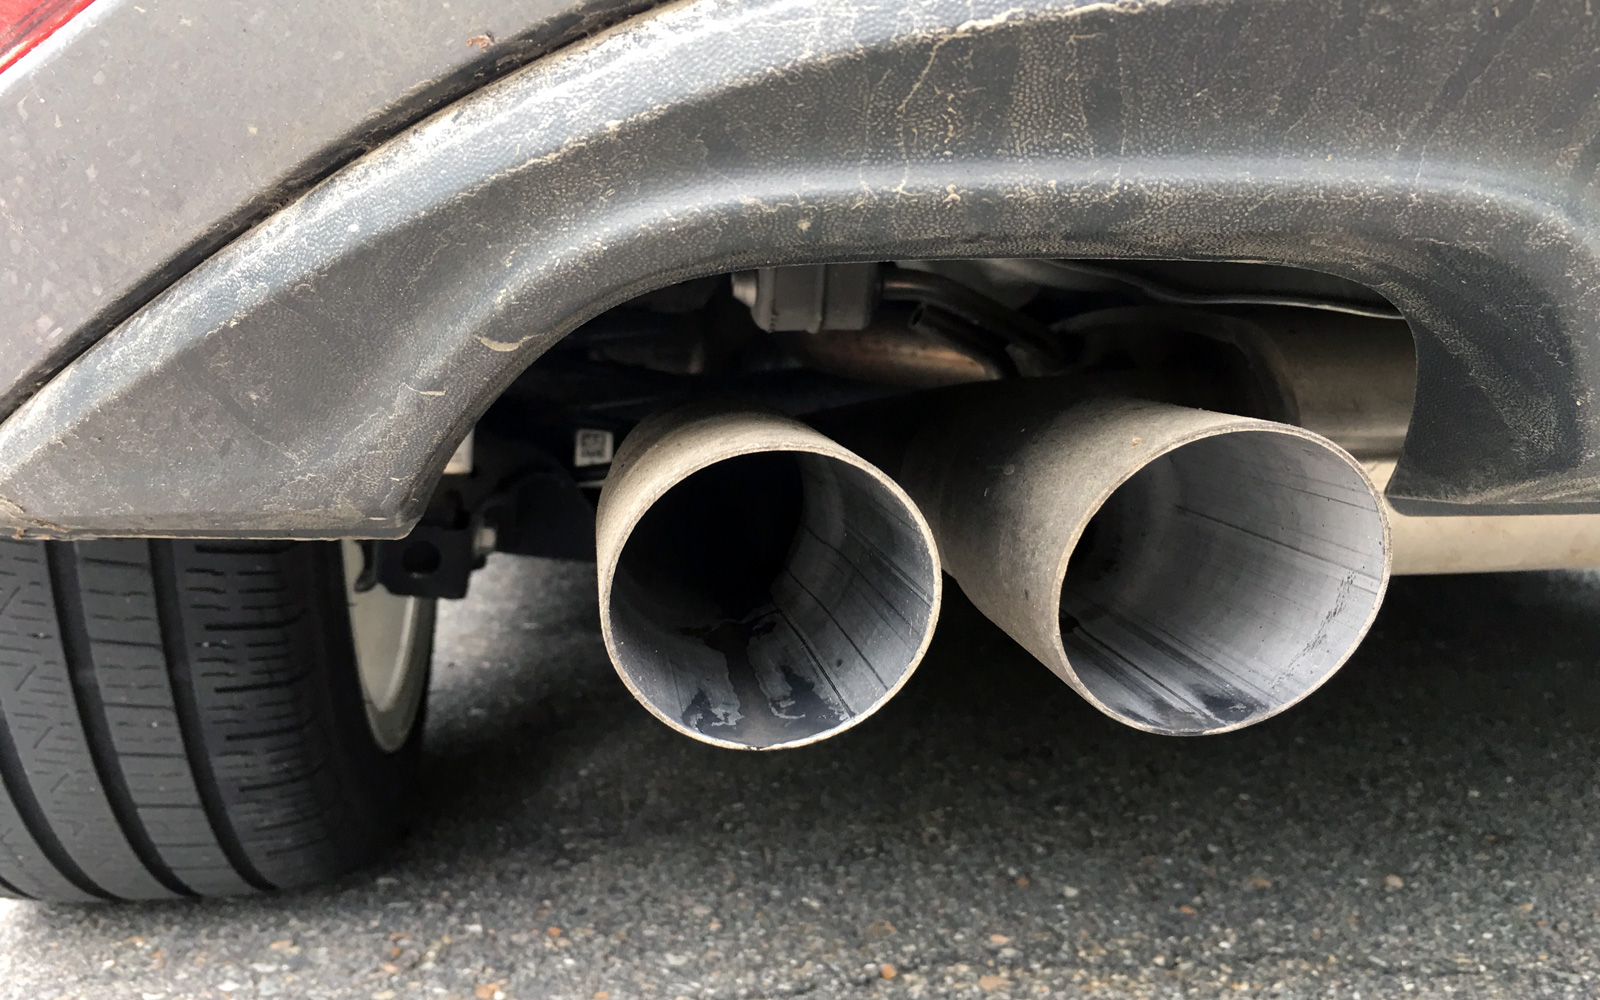 Tailpipe of a VW car